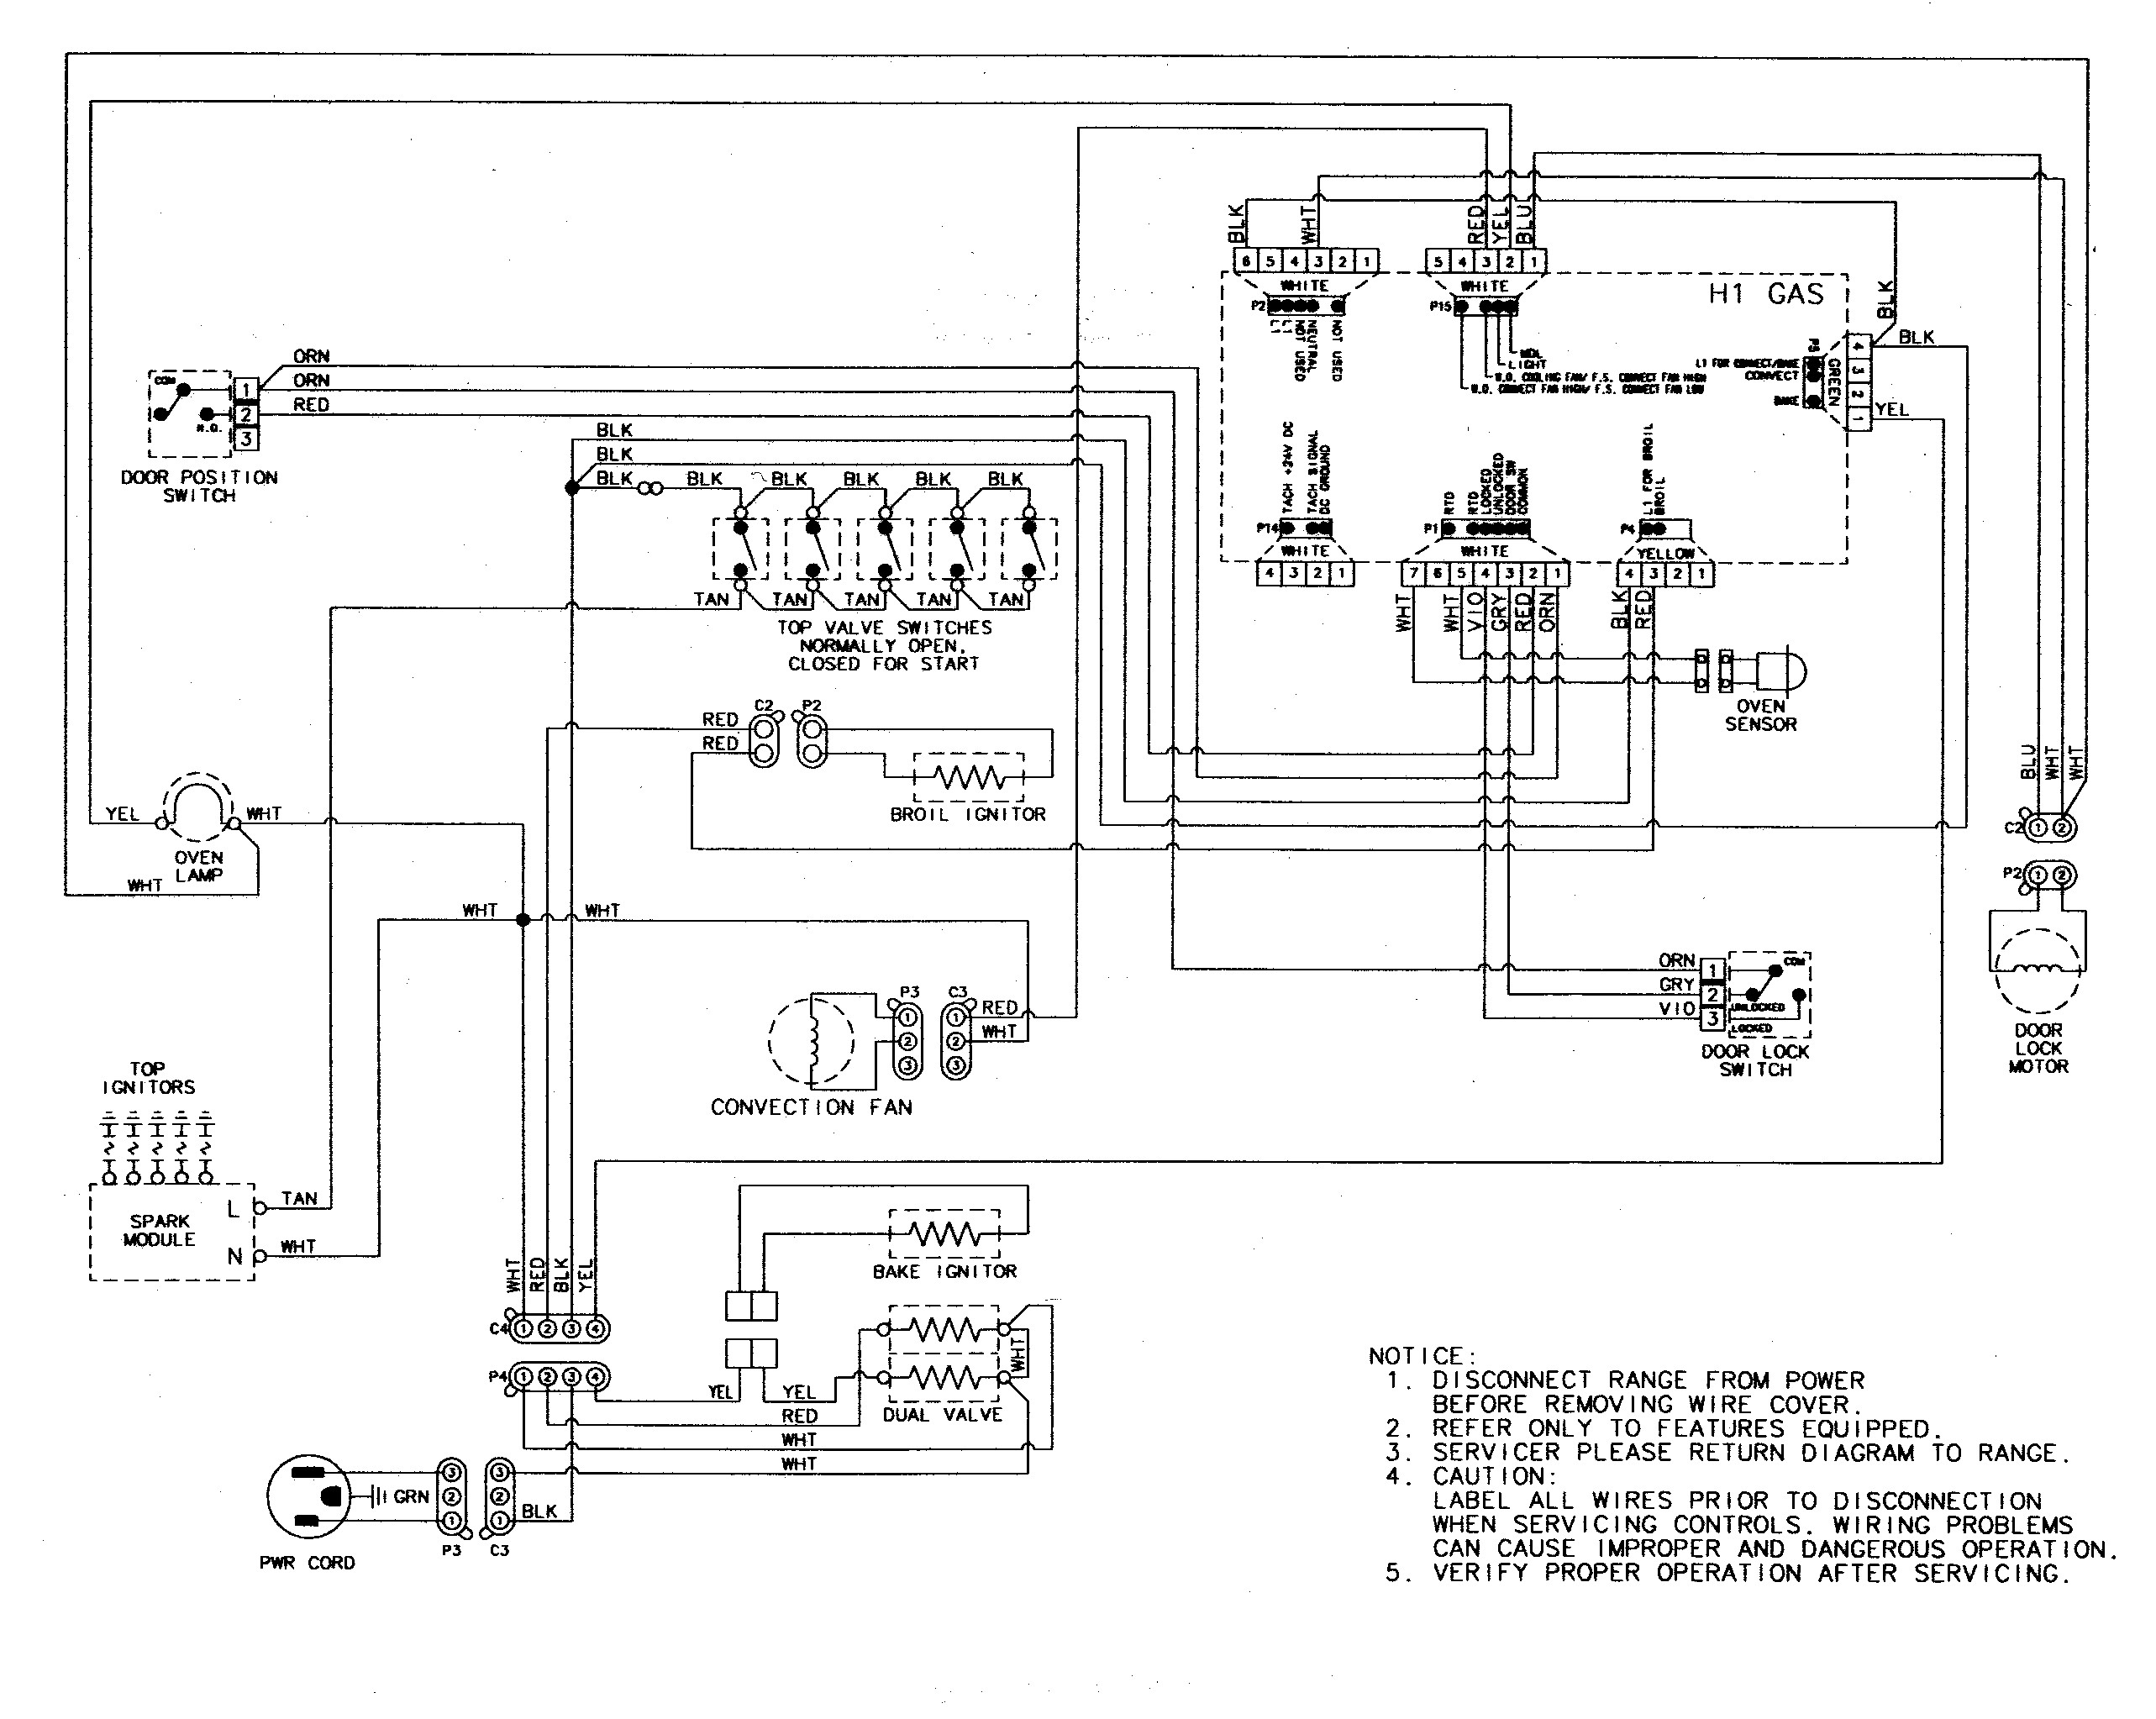 electric dryer wiring diagram sony cdx gt410u whirlpool collection